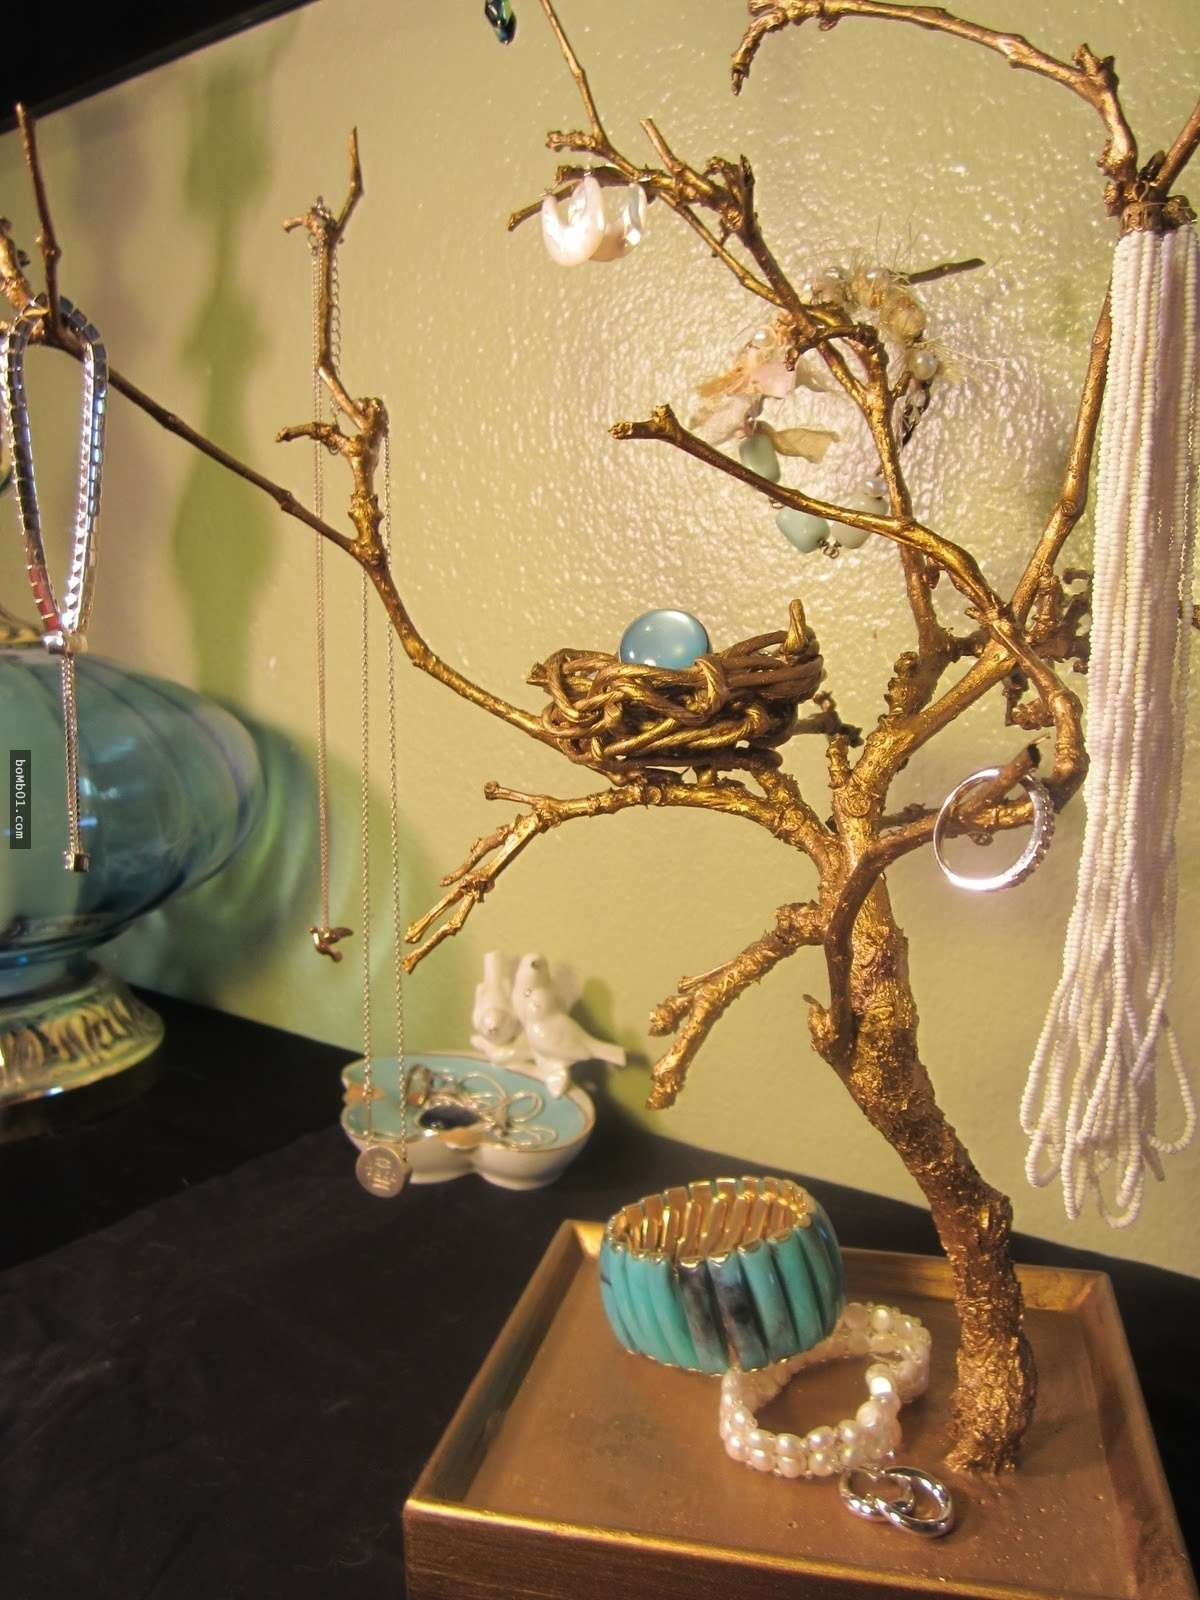 Jewelry display ideas on how to use a tree branch as a jewelry organizer, jewelry storage and jewelry display piece.